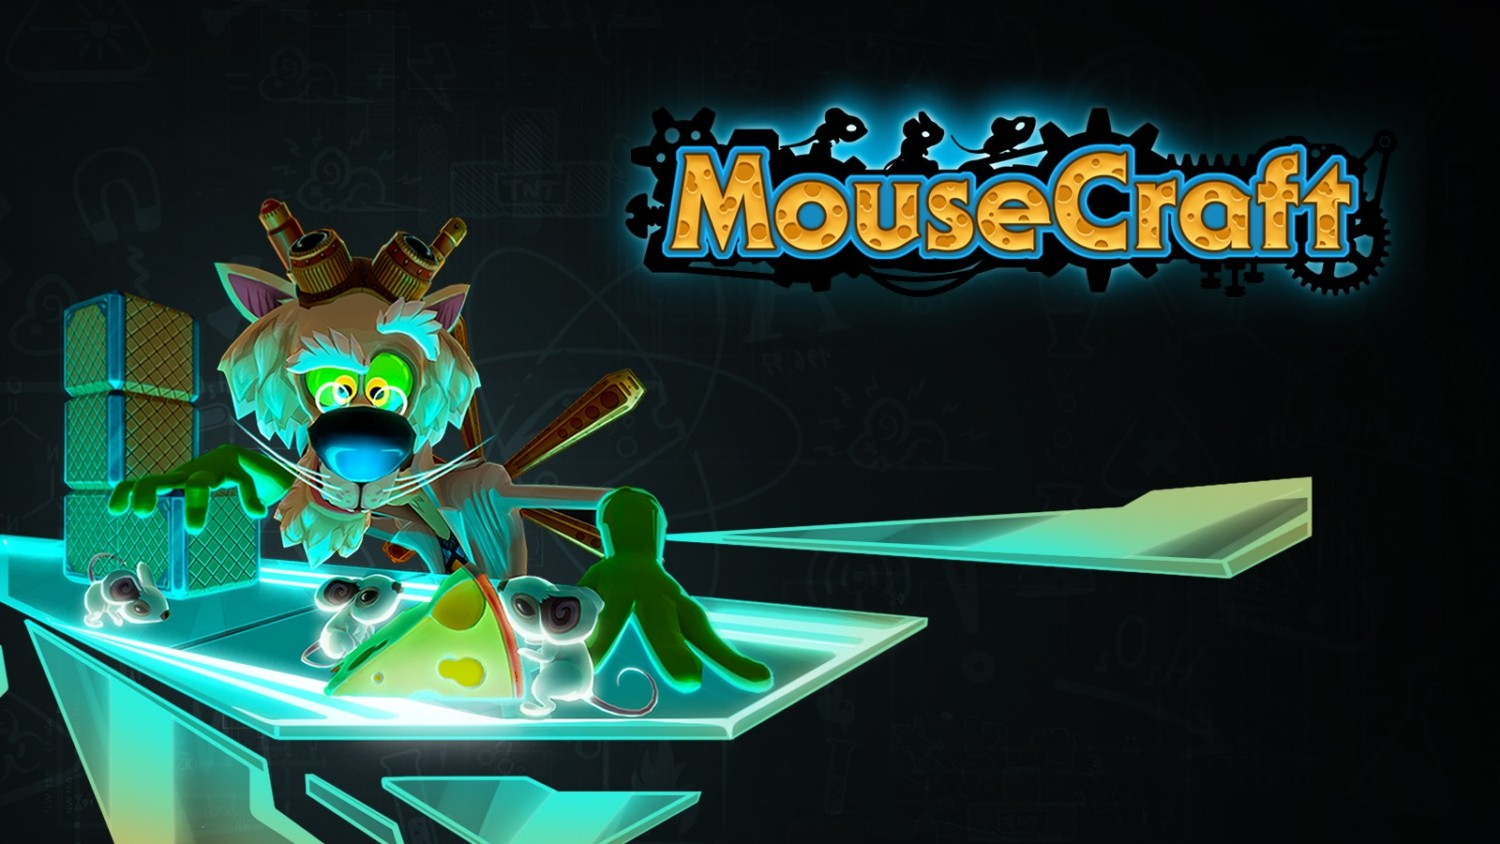 MouseCraft Hits Nintendo Switch In The West On February 27, 2020